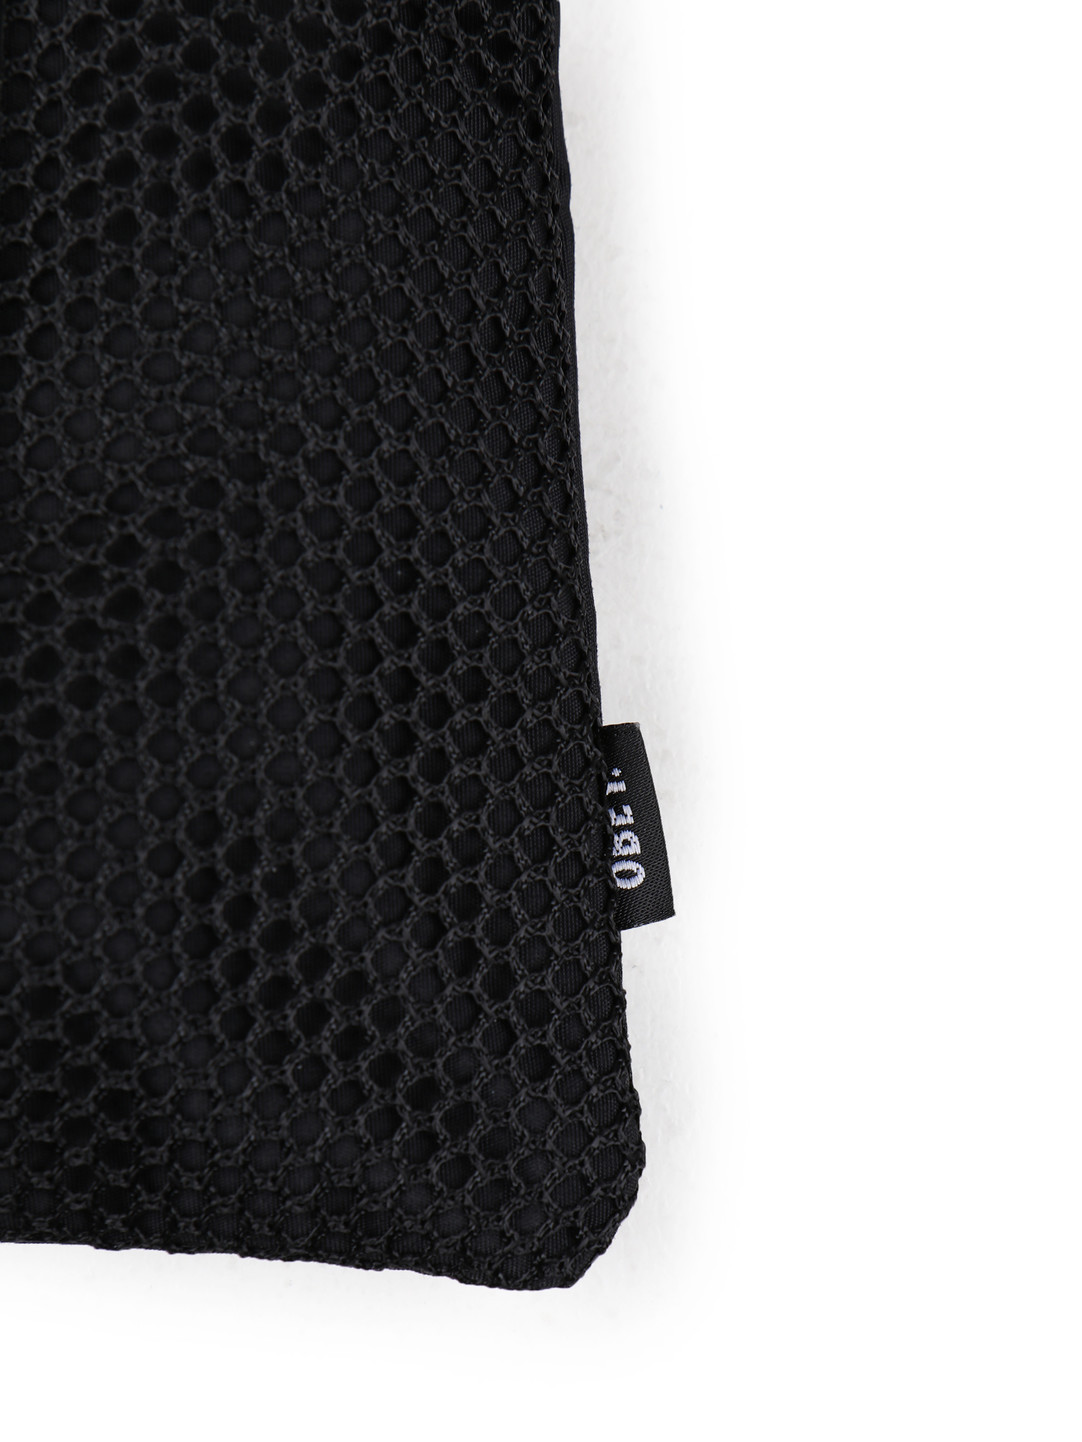 Obey Obey Conditions Side Pouch BLK 100010111